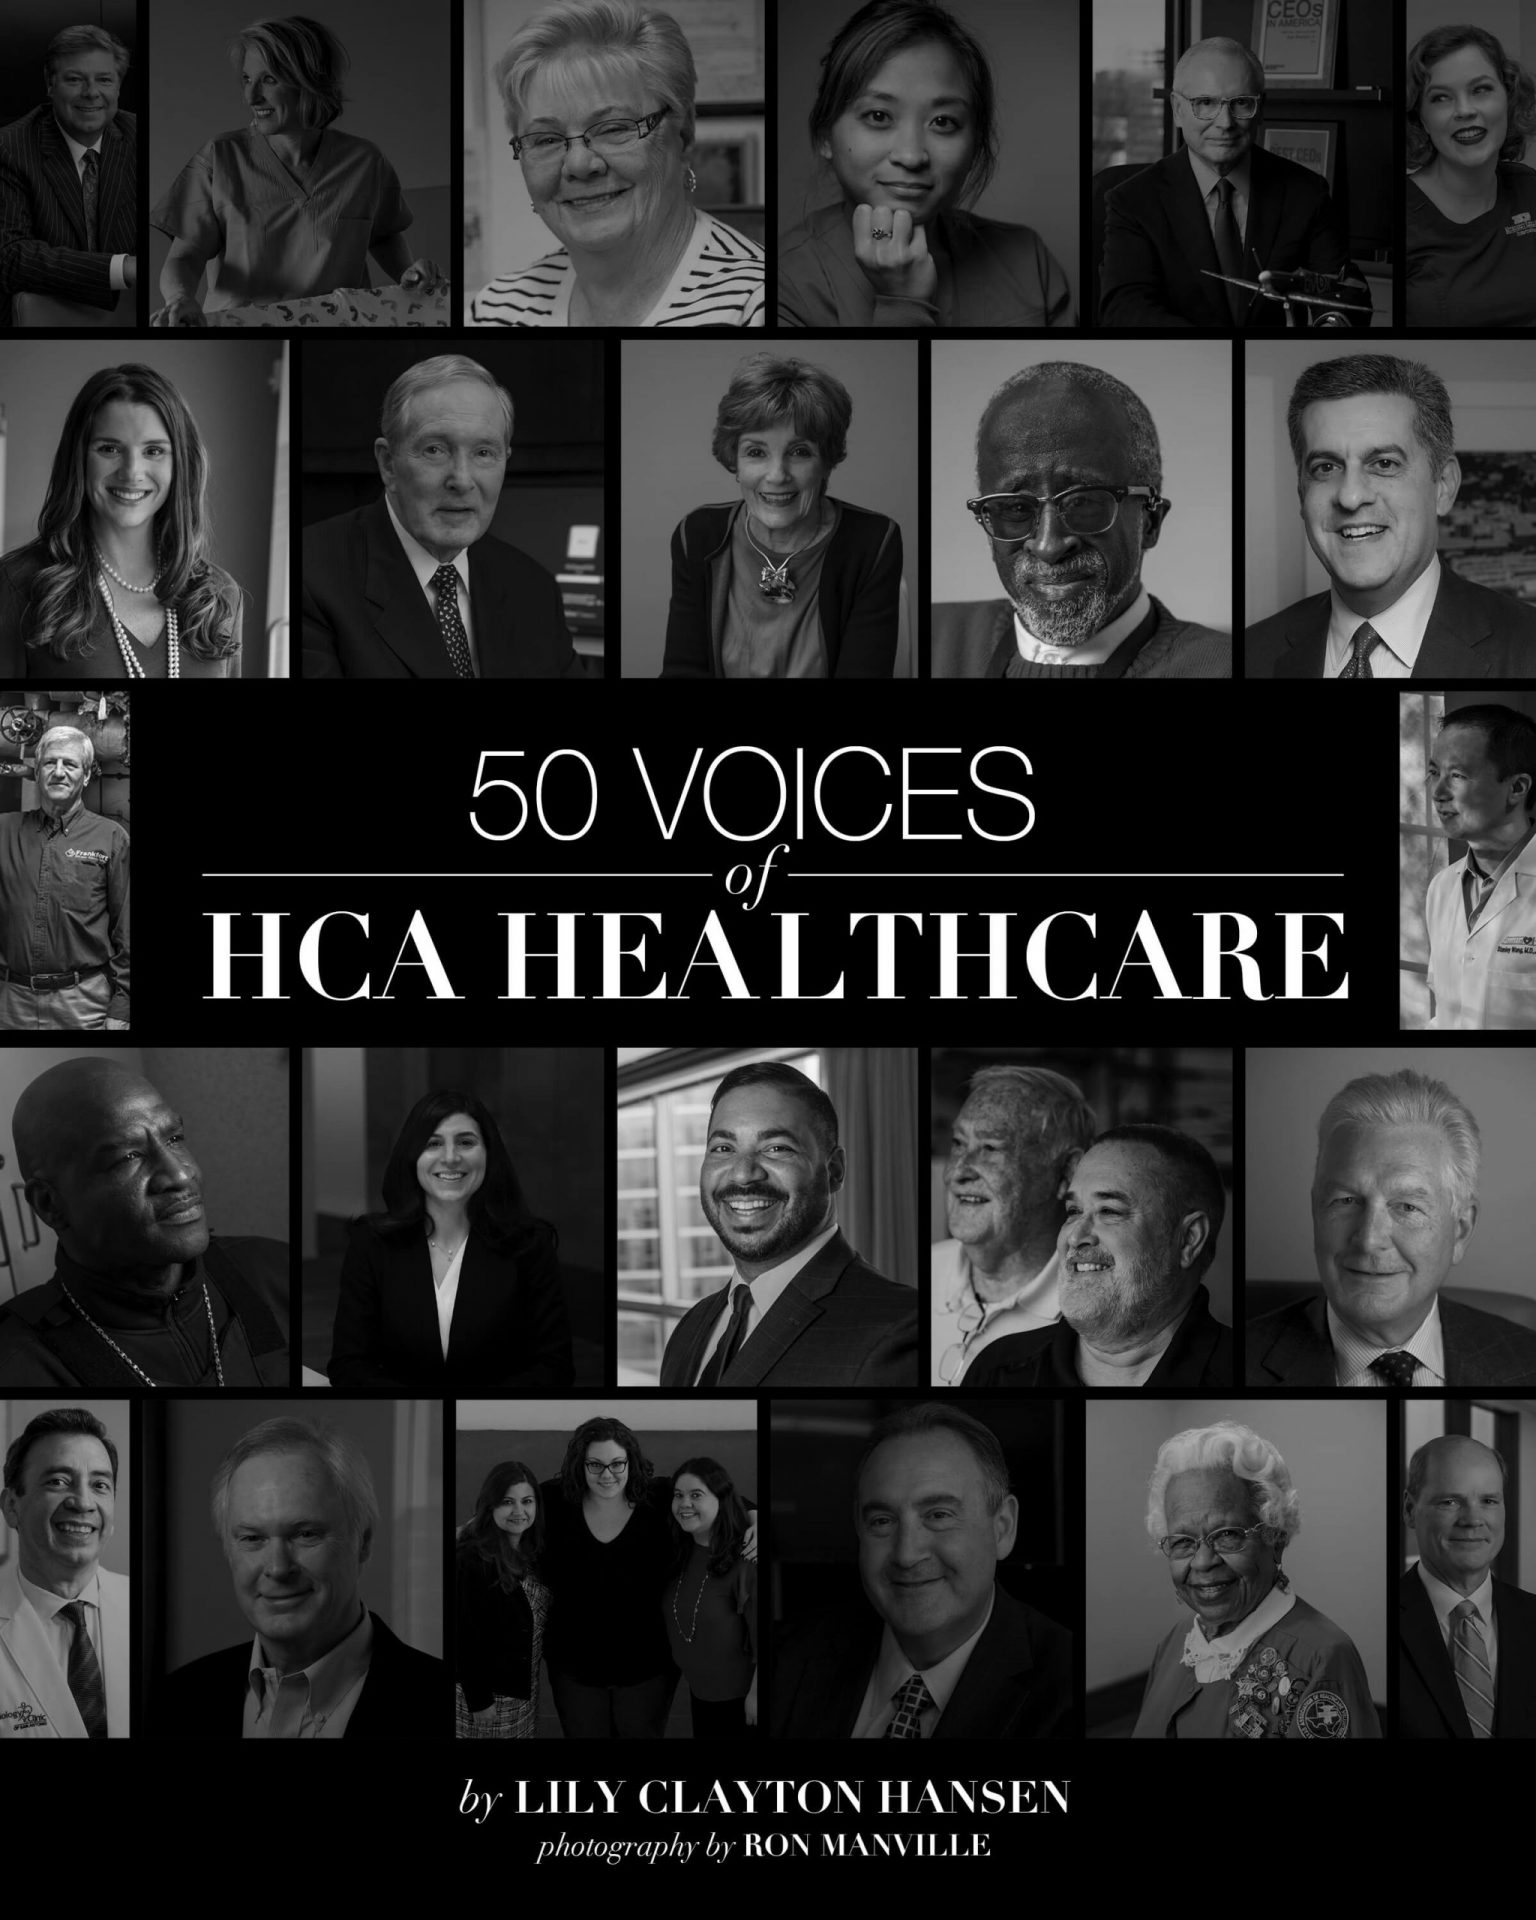 What It Was Like to Create HCA Healthcare's 50th Anniversary Book